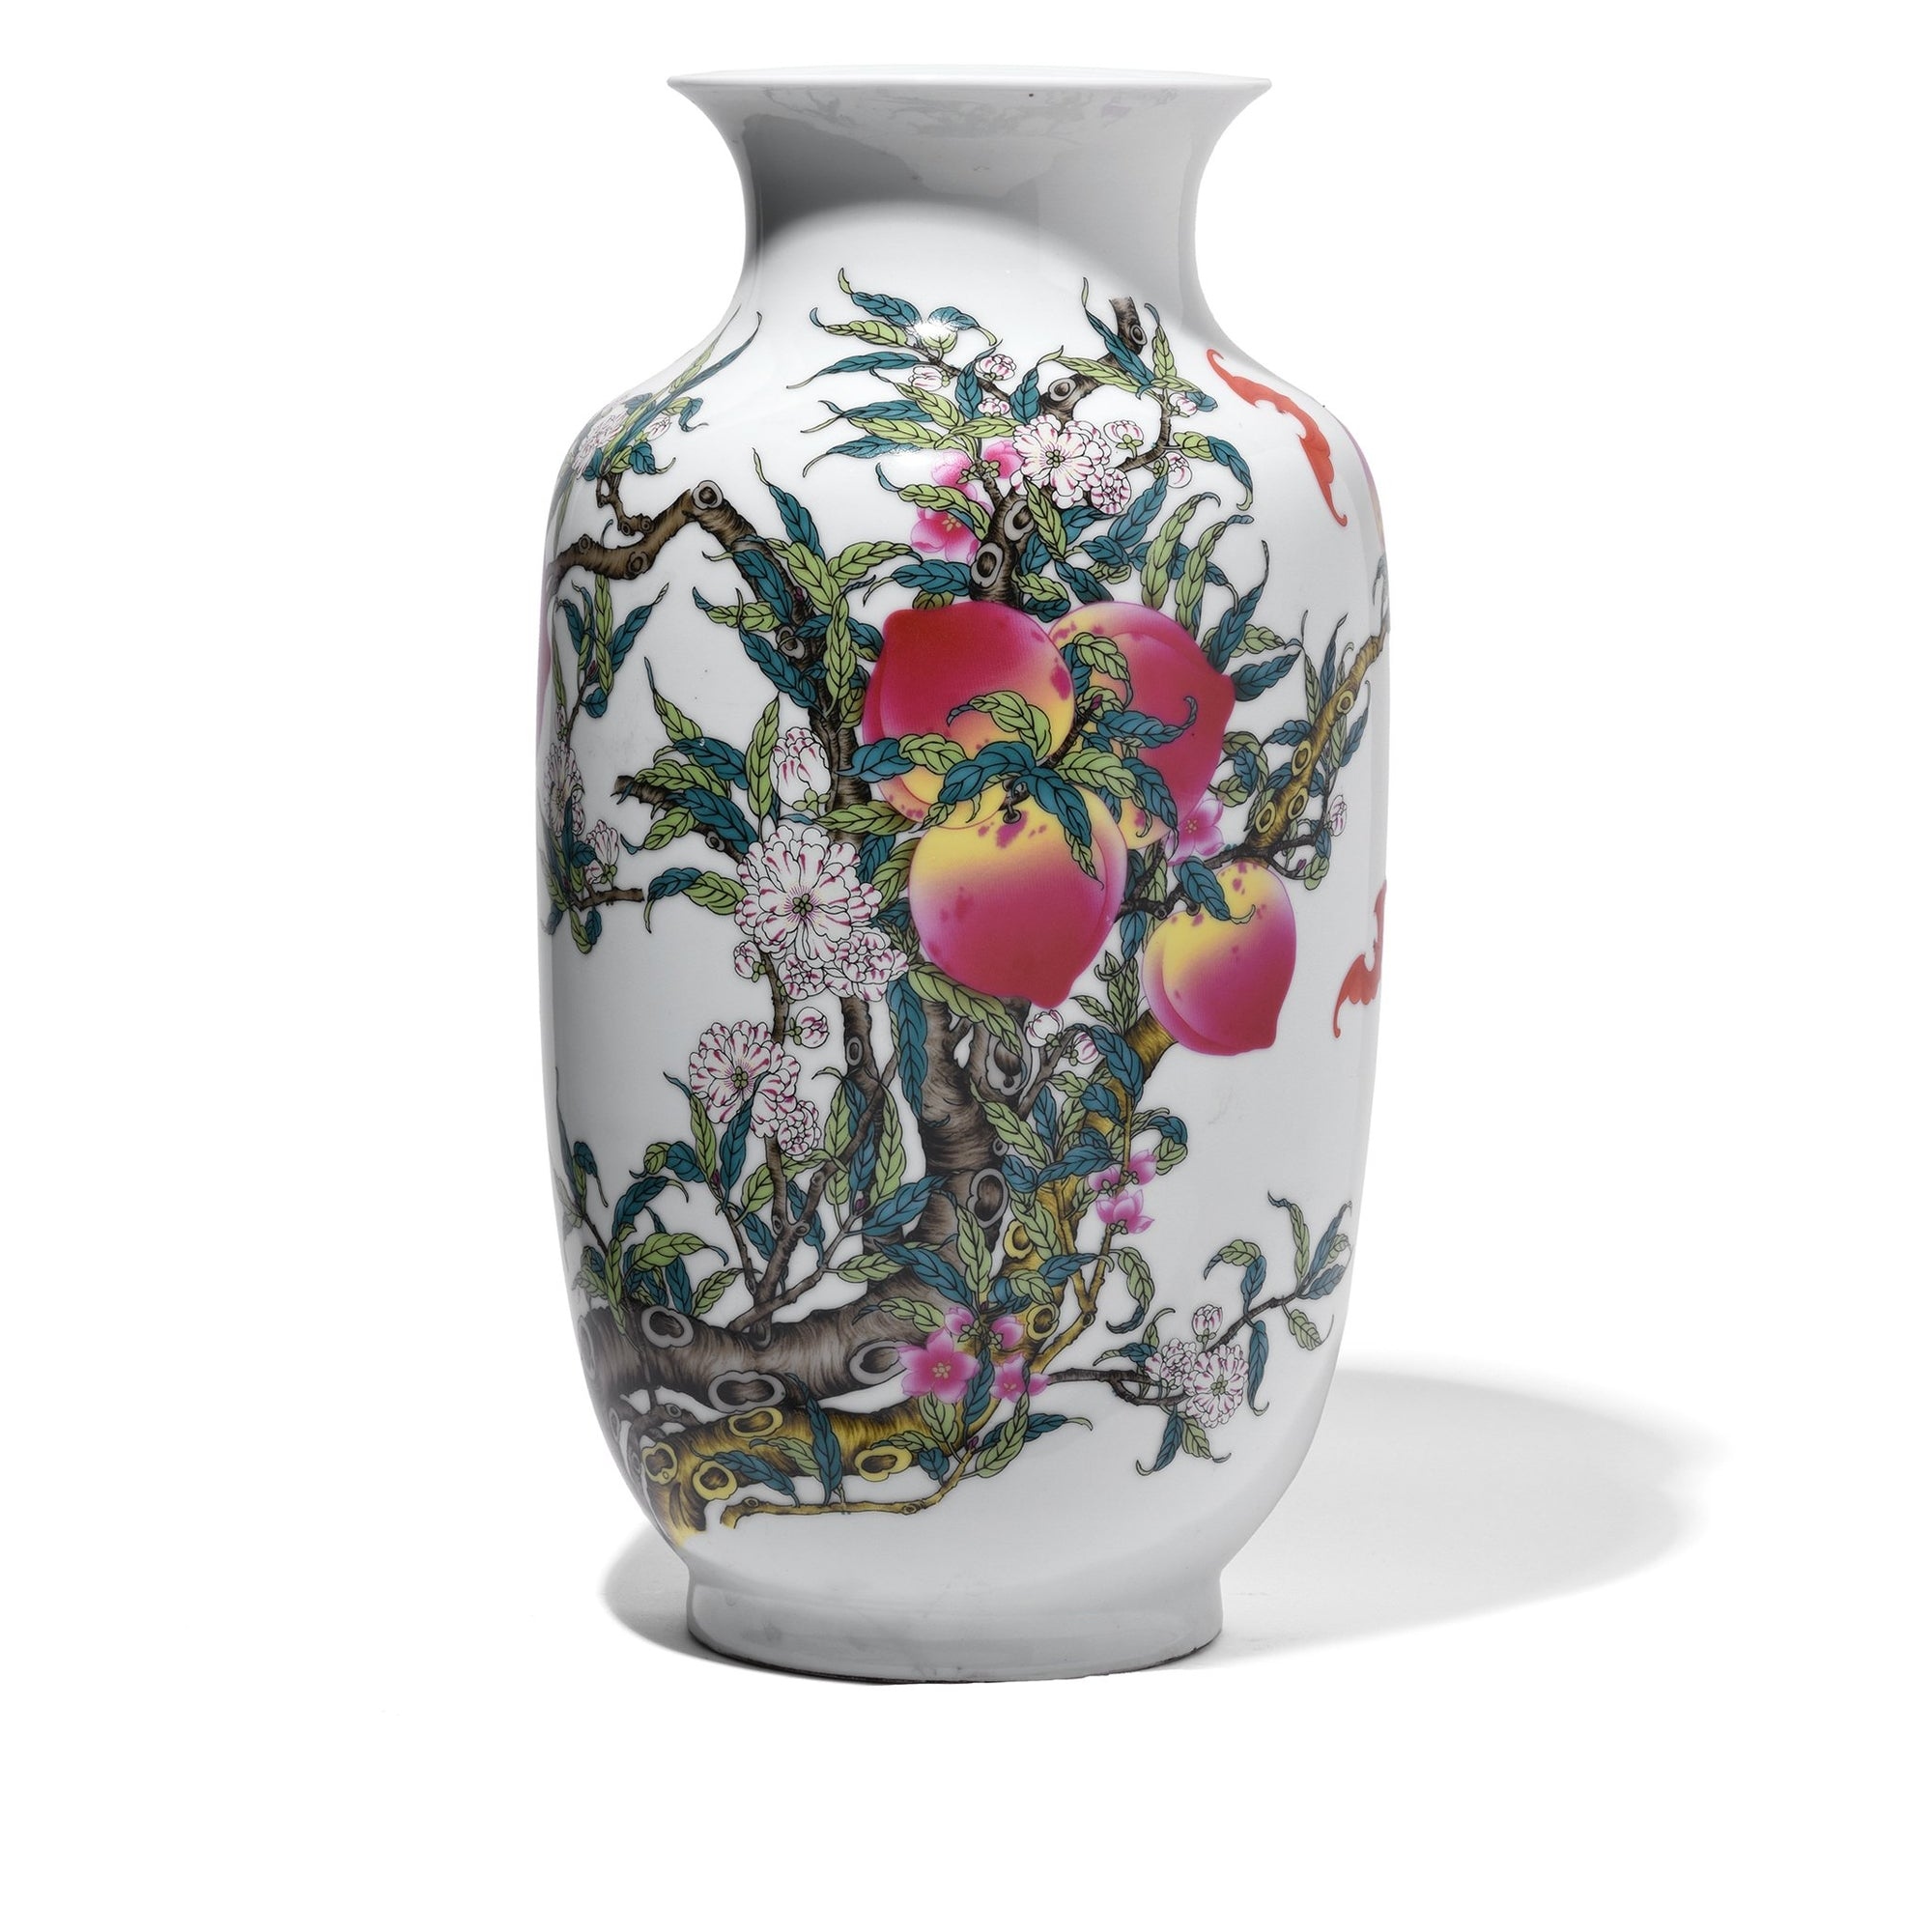 Chinese Reproduction Porcelain Rouleau Vase - Five Peach Design